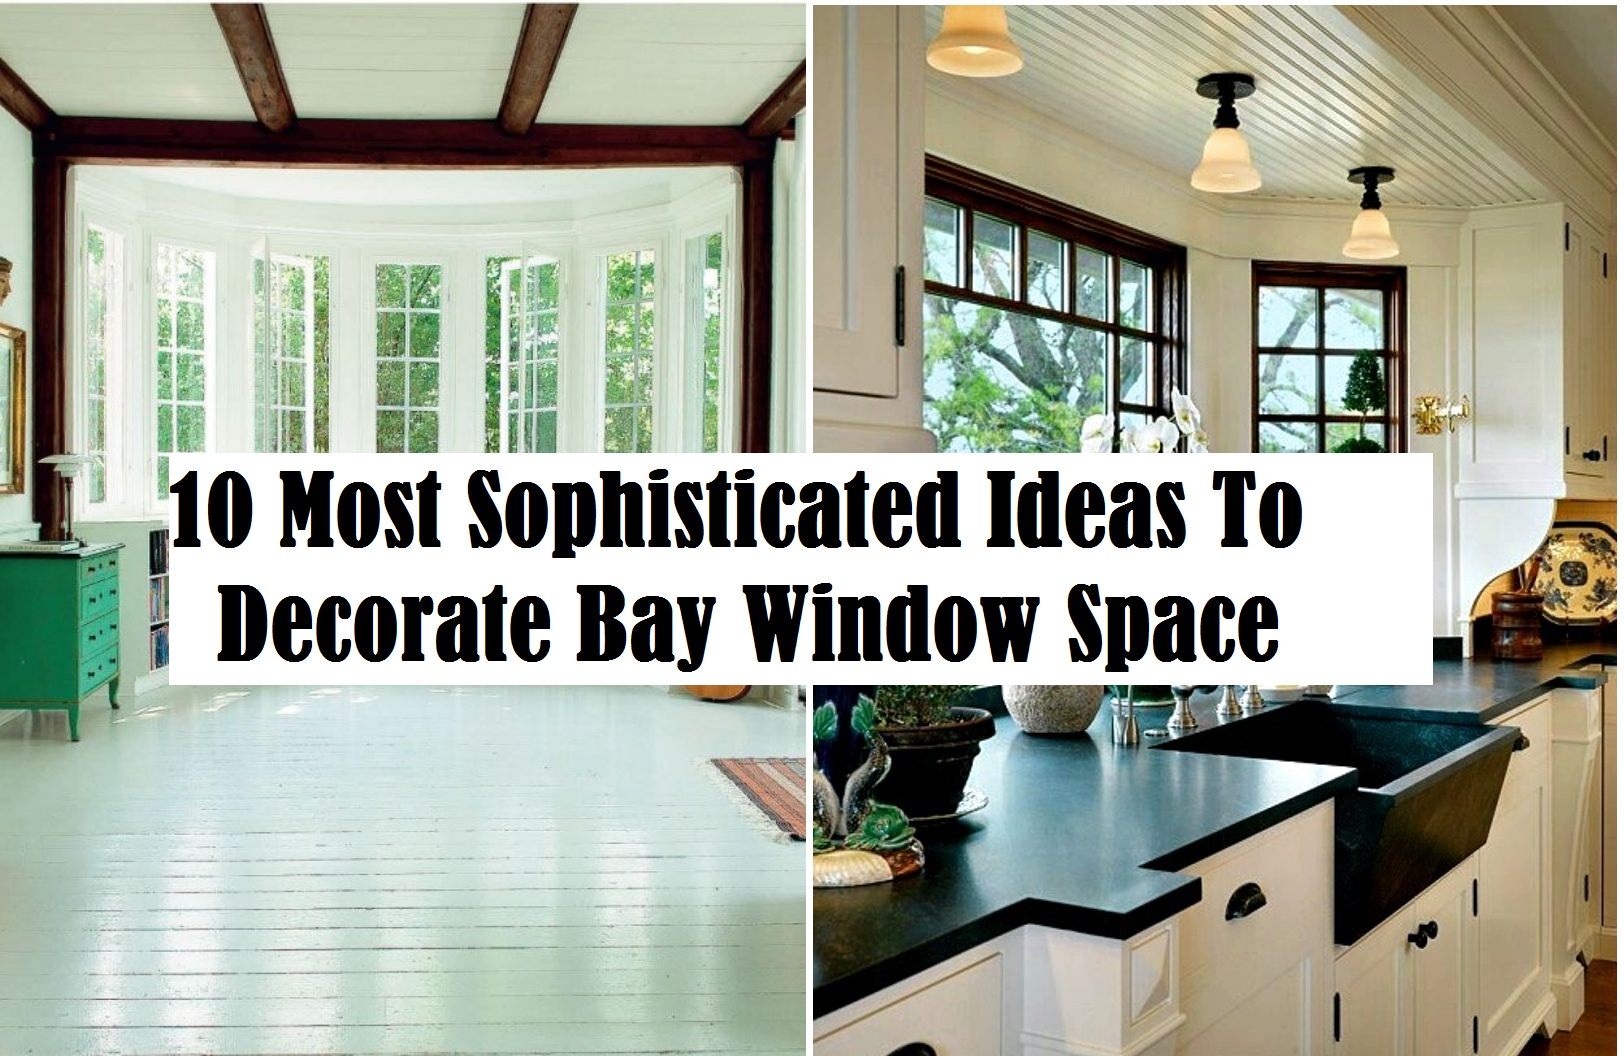 10 most sophisticated ideas to decorate bay window space